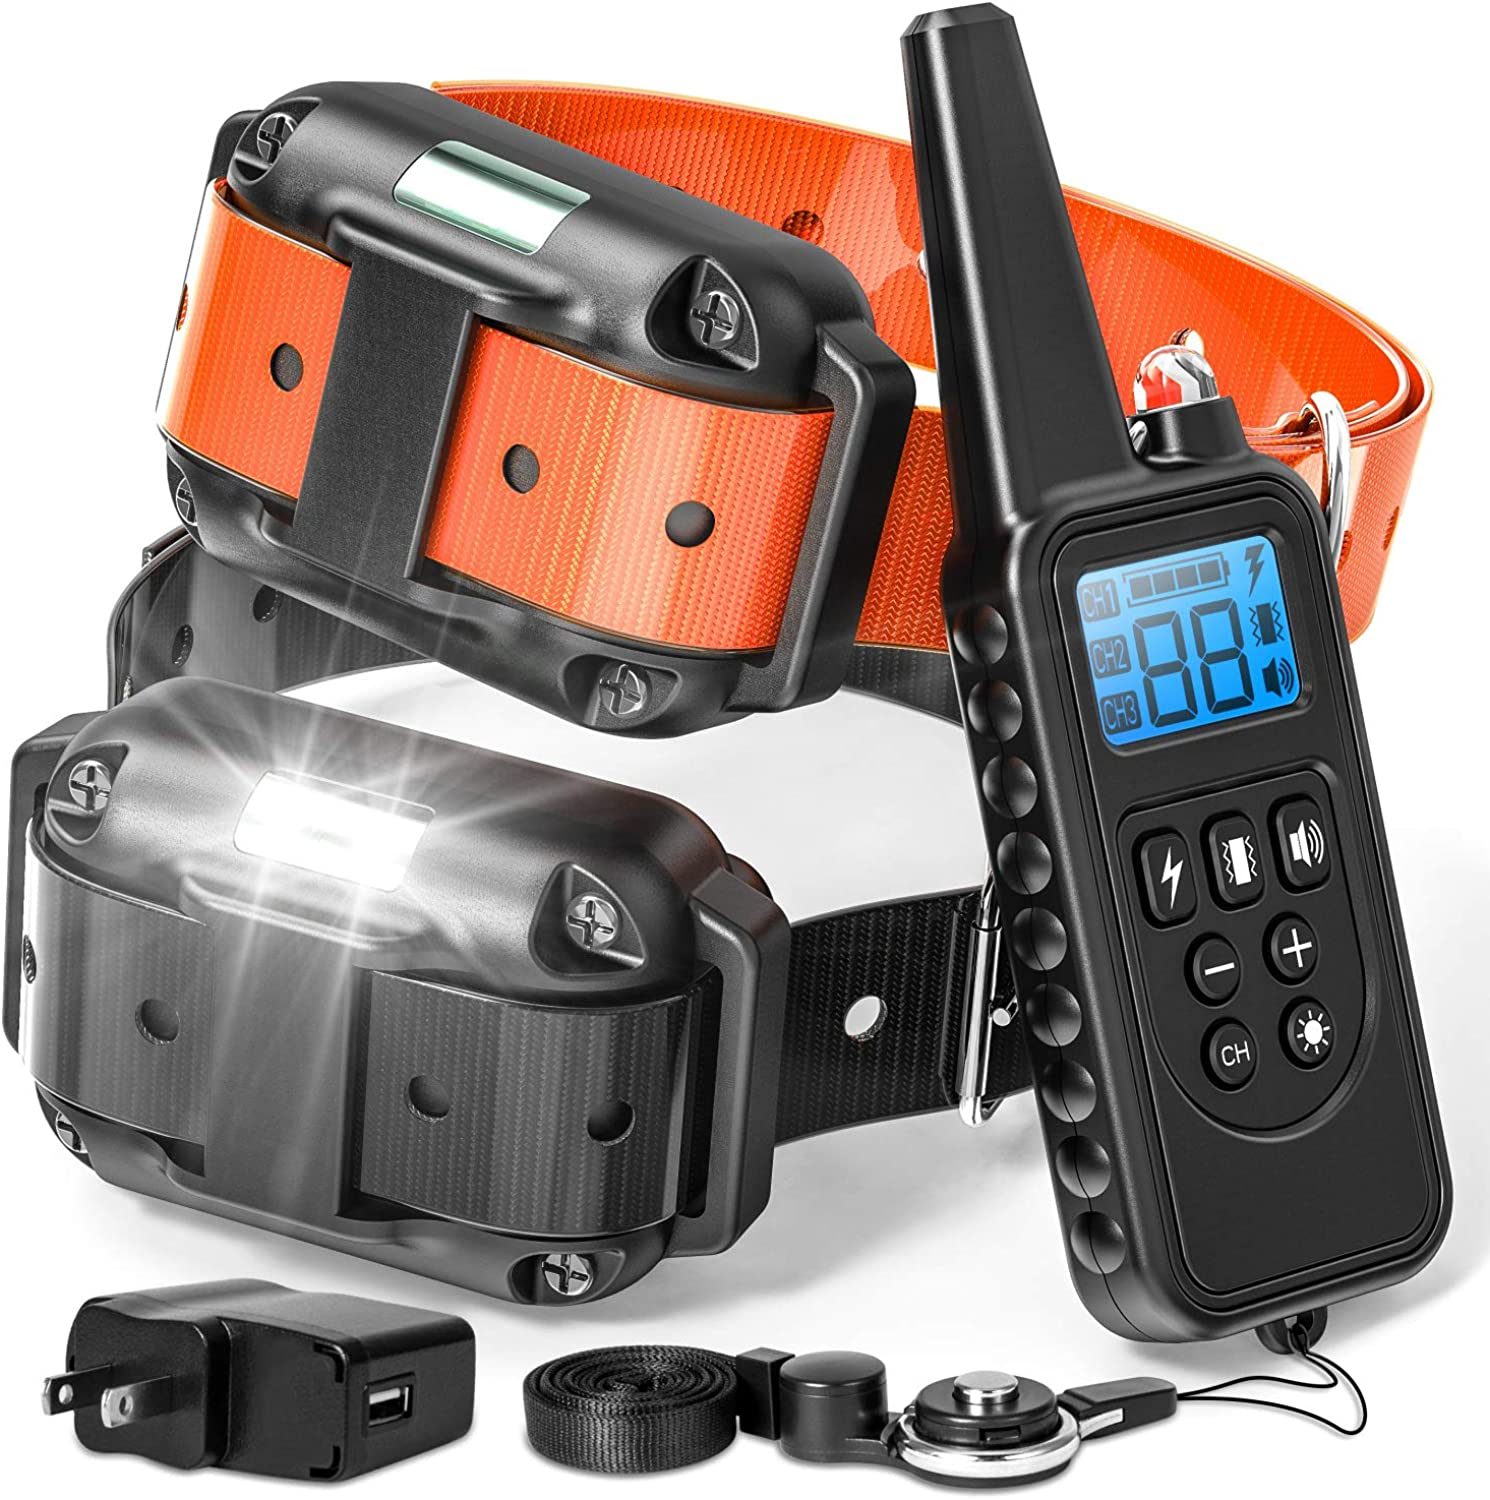 Fcolor Dog Training Collar, 865 Yards Shock Collar for Dogs with Remote for Large Medium Small Dogs, with Light Beep Vibration Shock, Waterproof and Rechargeable Dog Shock Collar for 2 Dogs